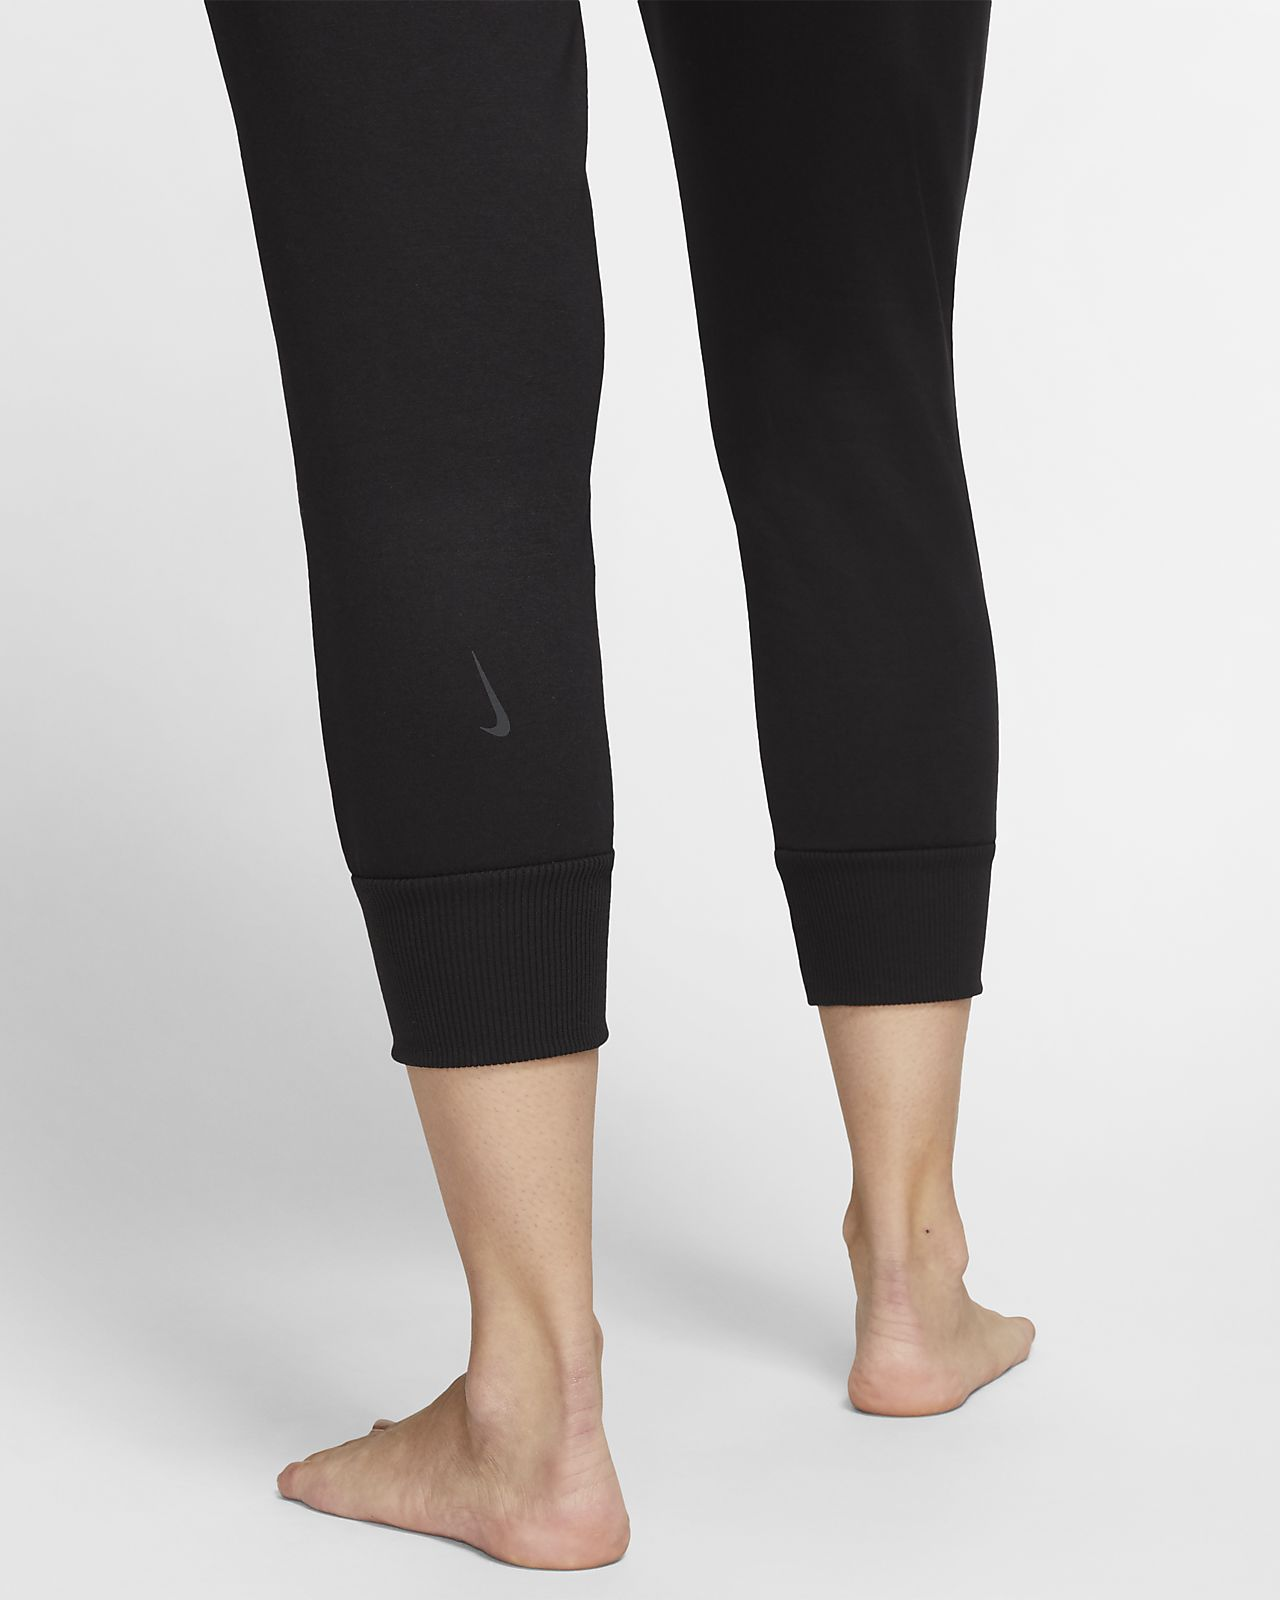 Nike Yoga Women's Cropped Pants